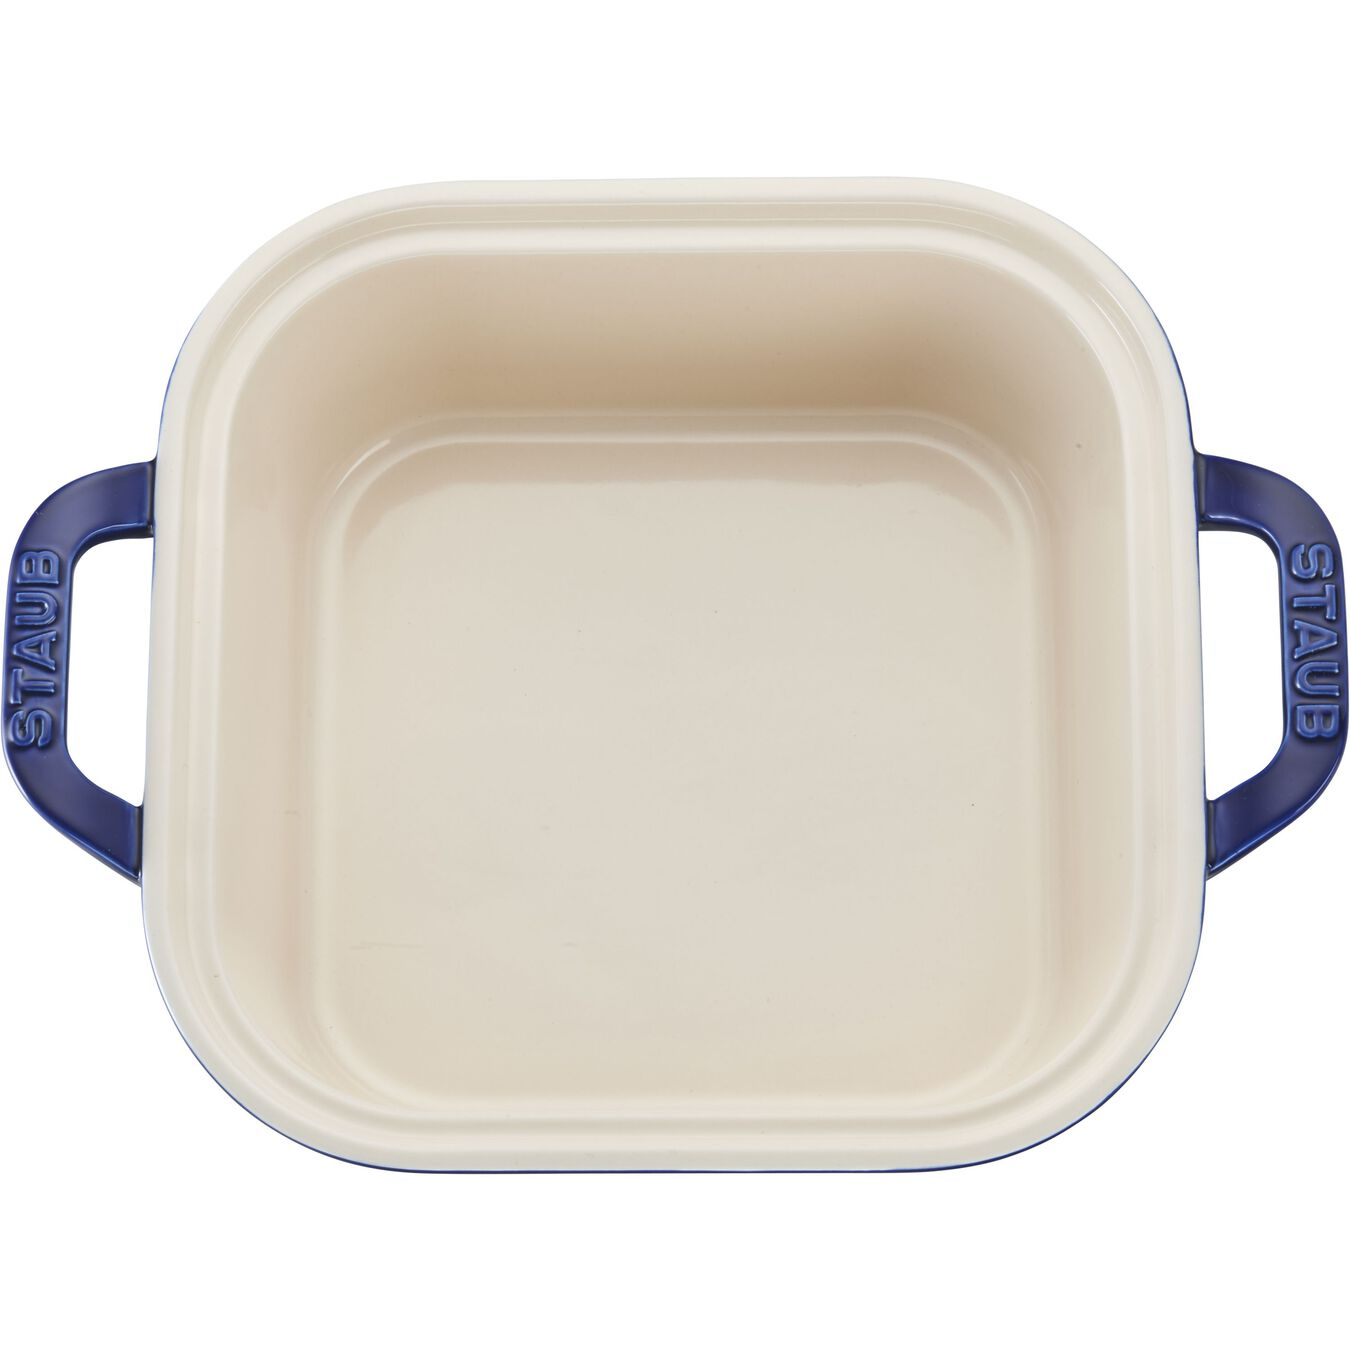 9-inch, square, Special shape bakeware, dark blue,,large 6